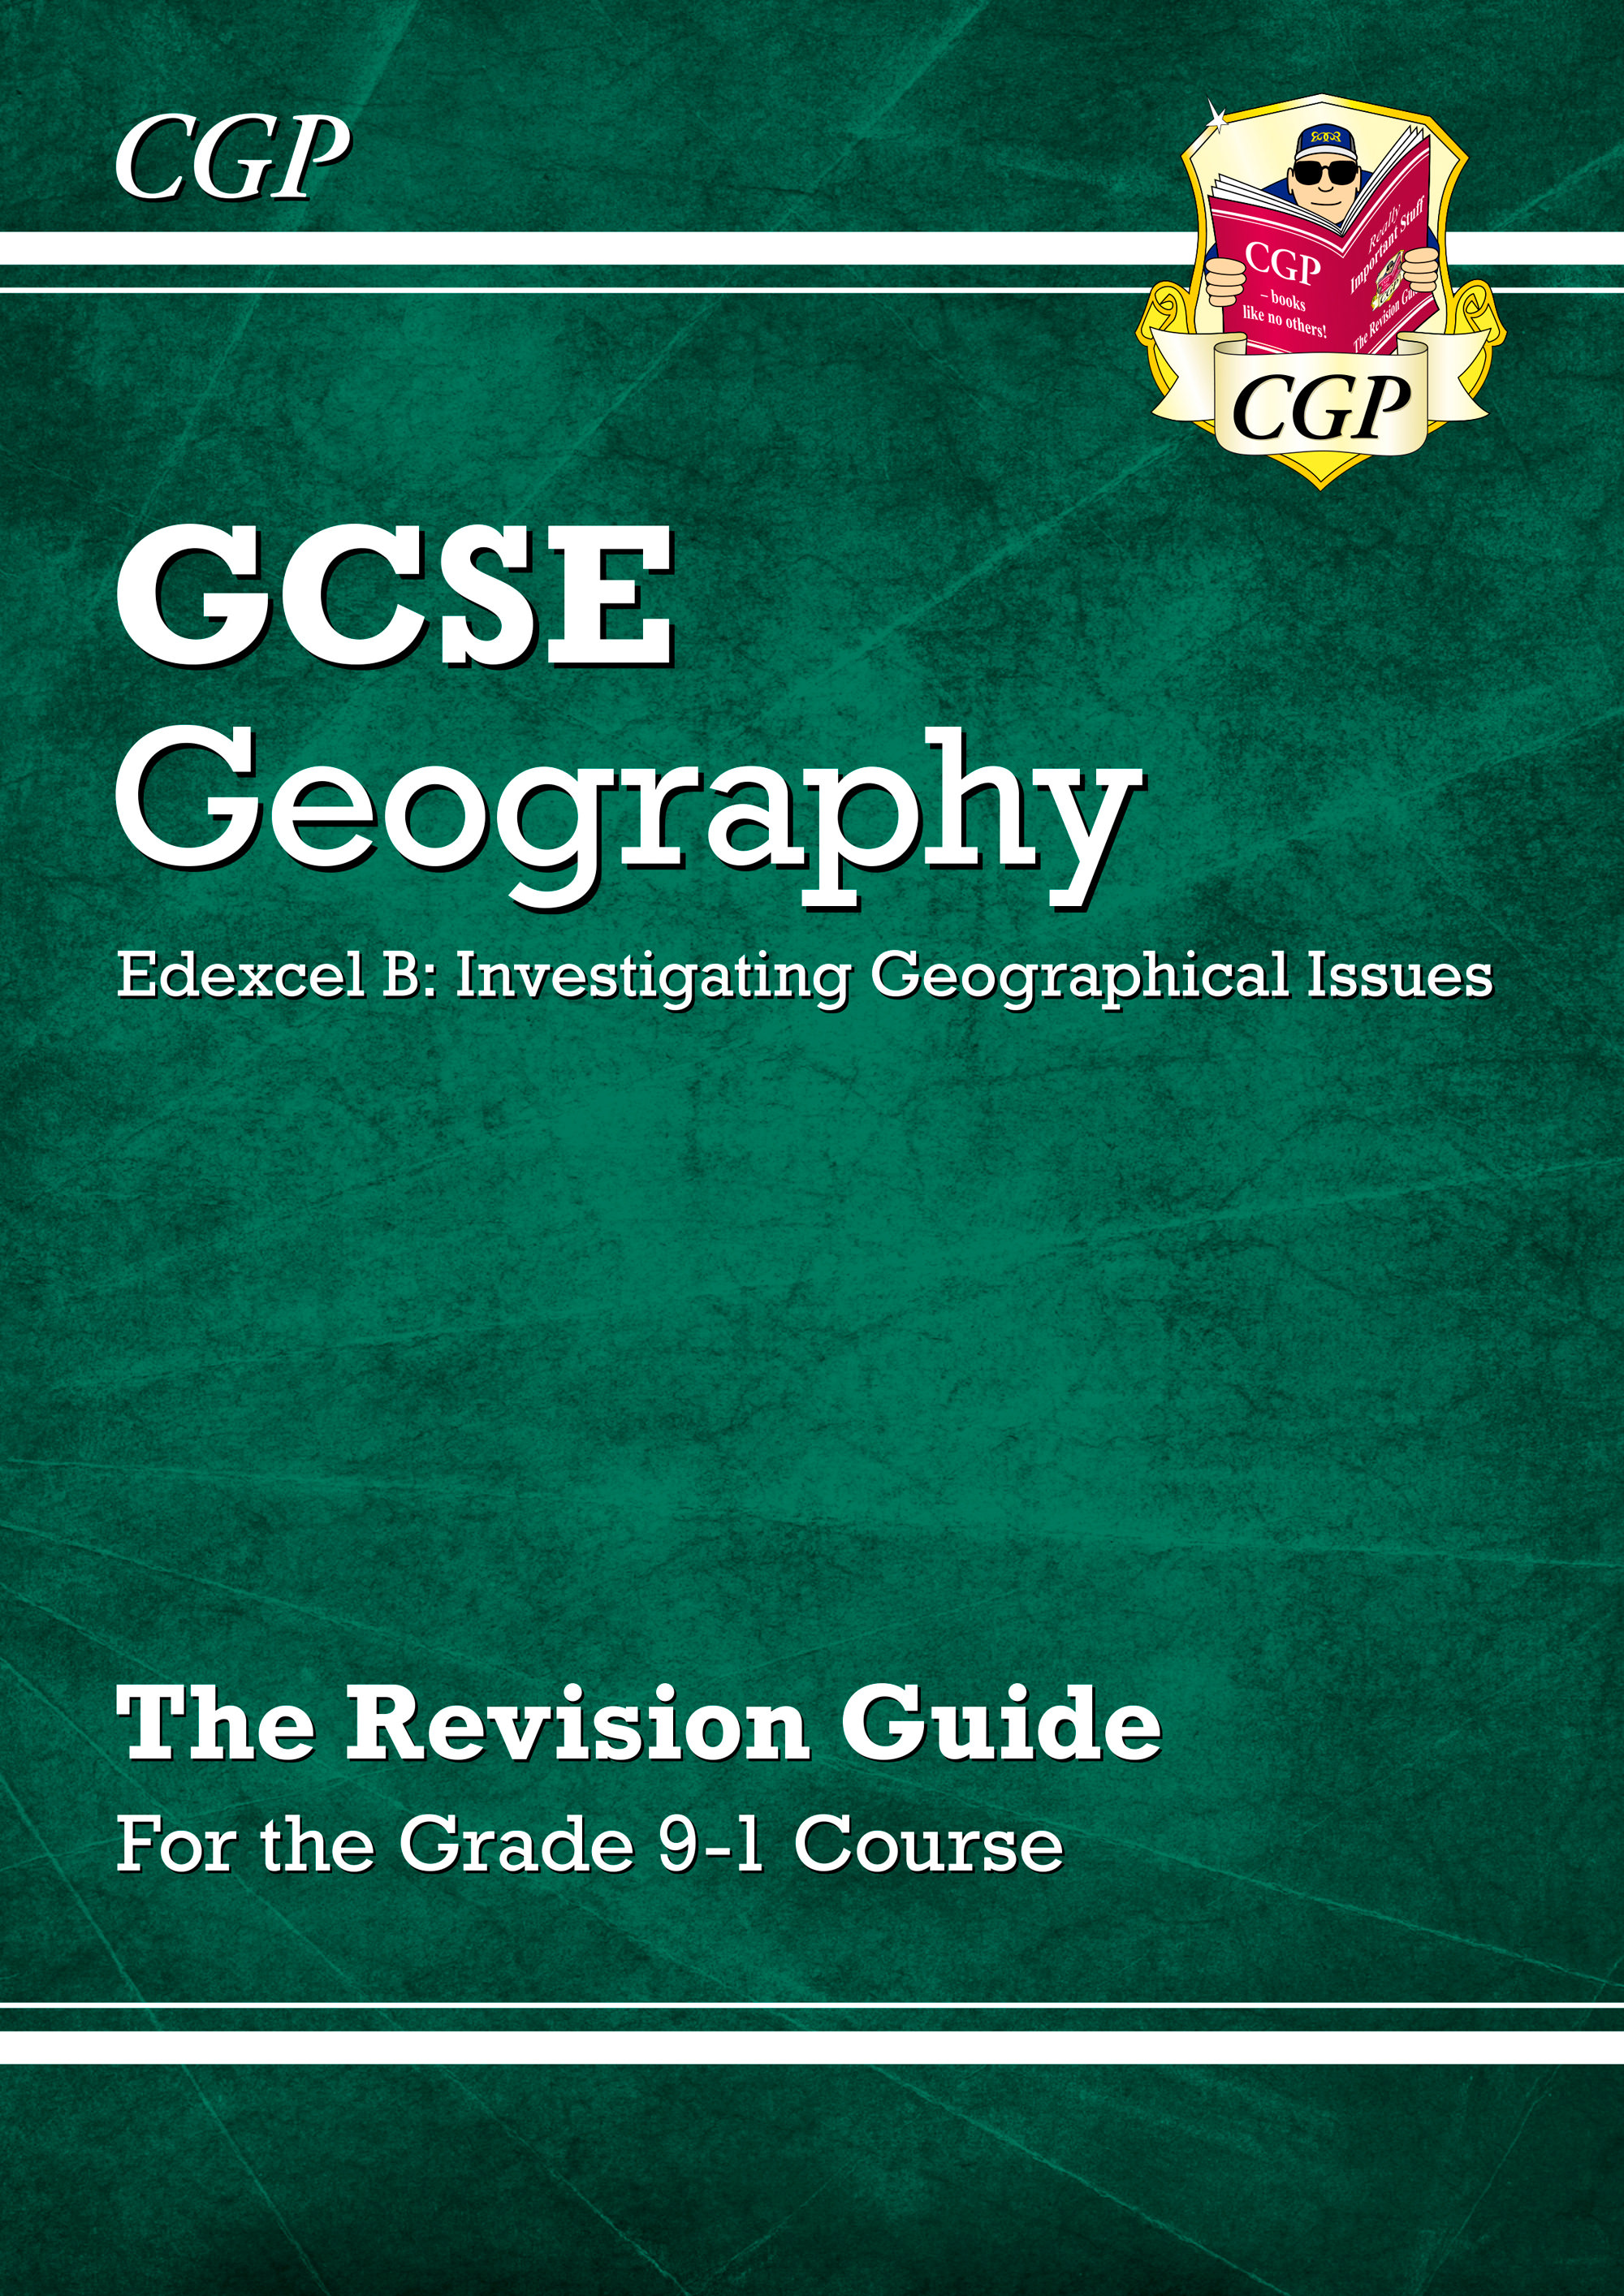 GER41DK - New Grade 9-1 GCSE Geography Edexcel B: Investigating Geographical Issues - Revision Guide